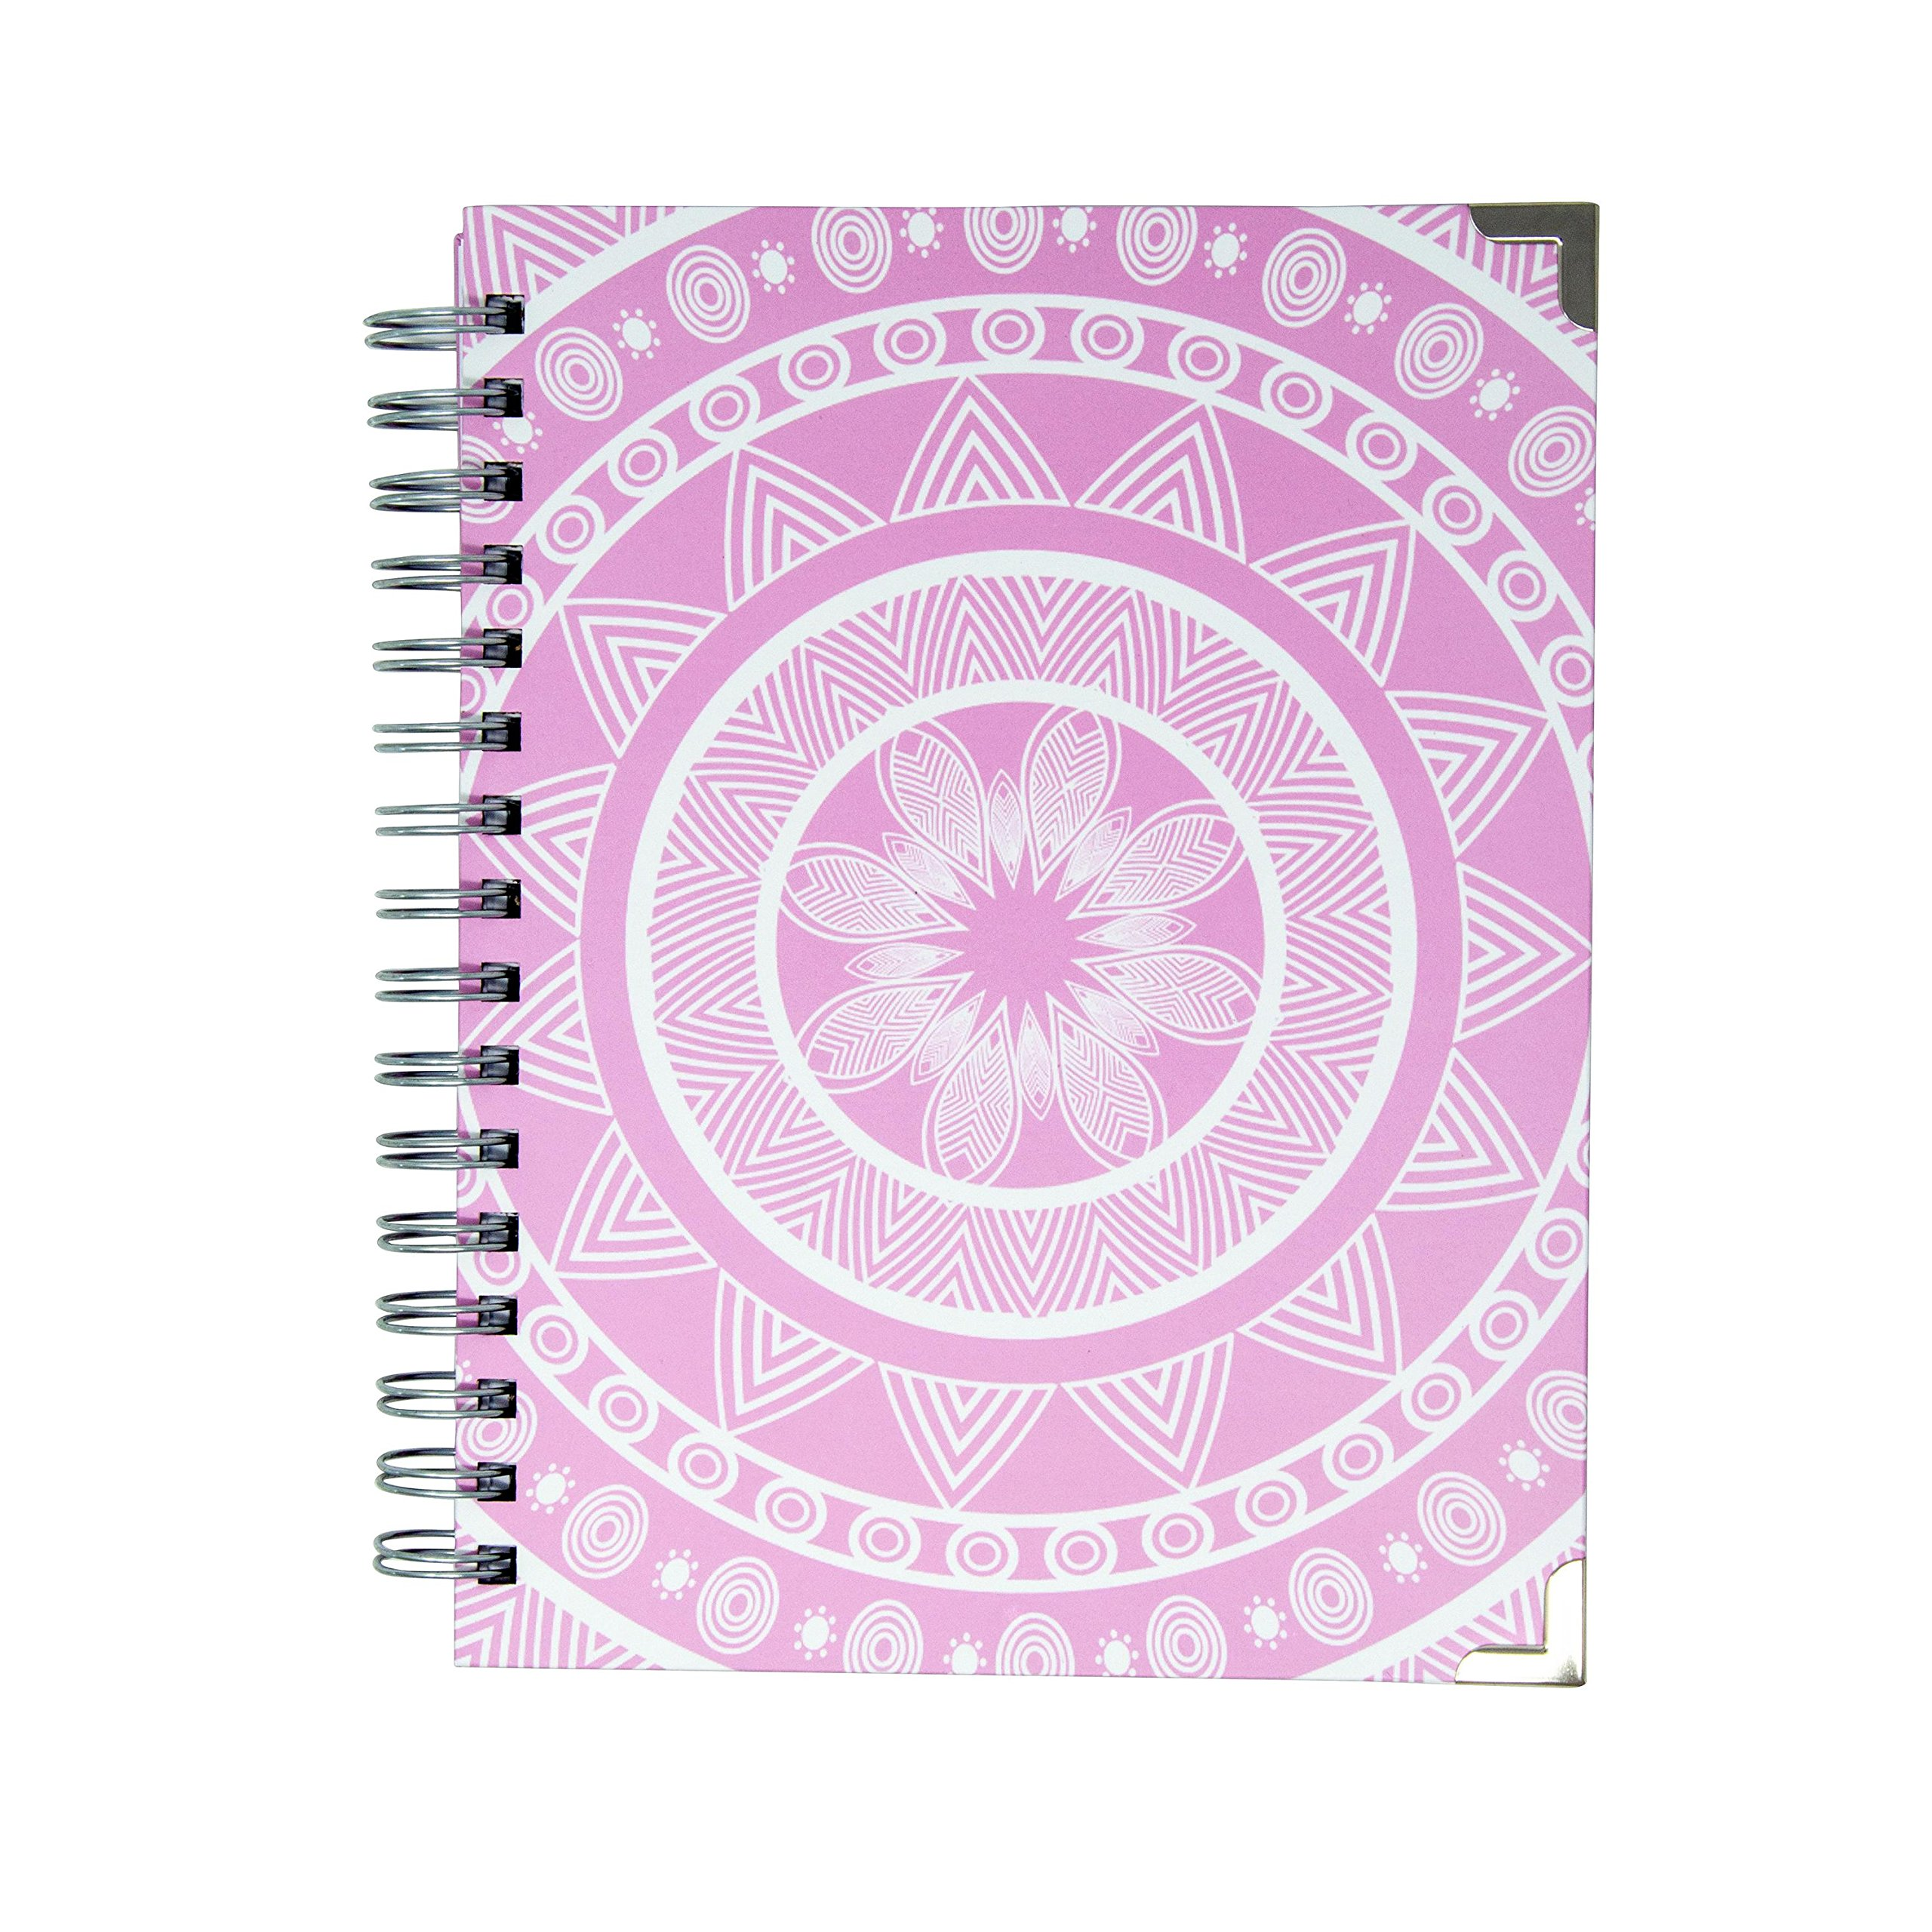 Lined and Blank Pages 100gsm Spiral-Bound Hardcover Journal Notebook 6.5 x 8.5 inches Pink Mandala Diary